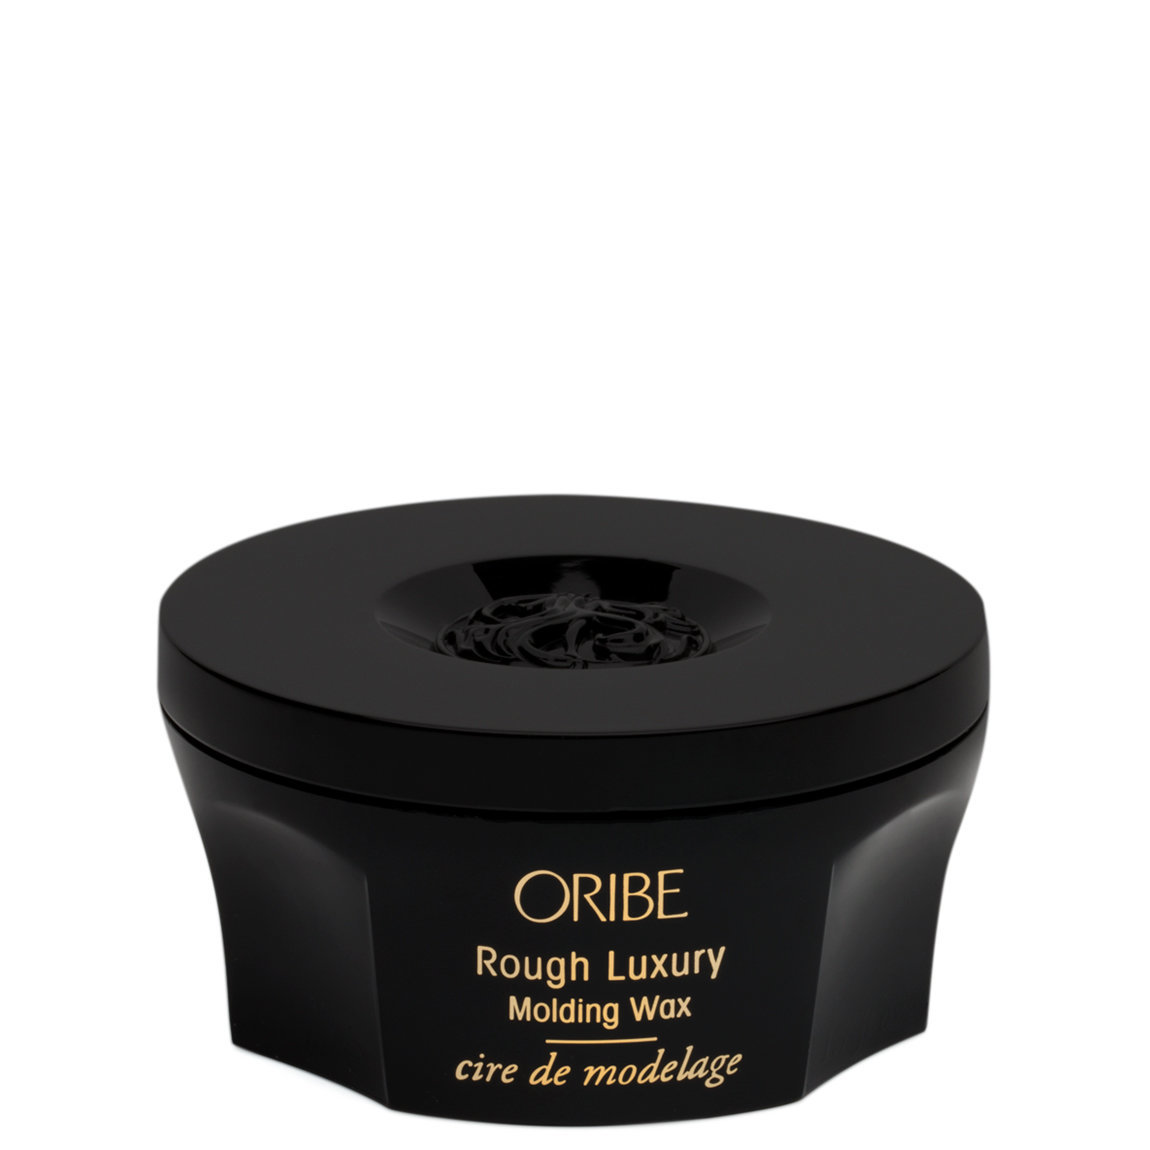 Oribe Rough Luxury Molding Wax product smear.